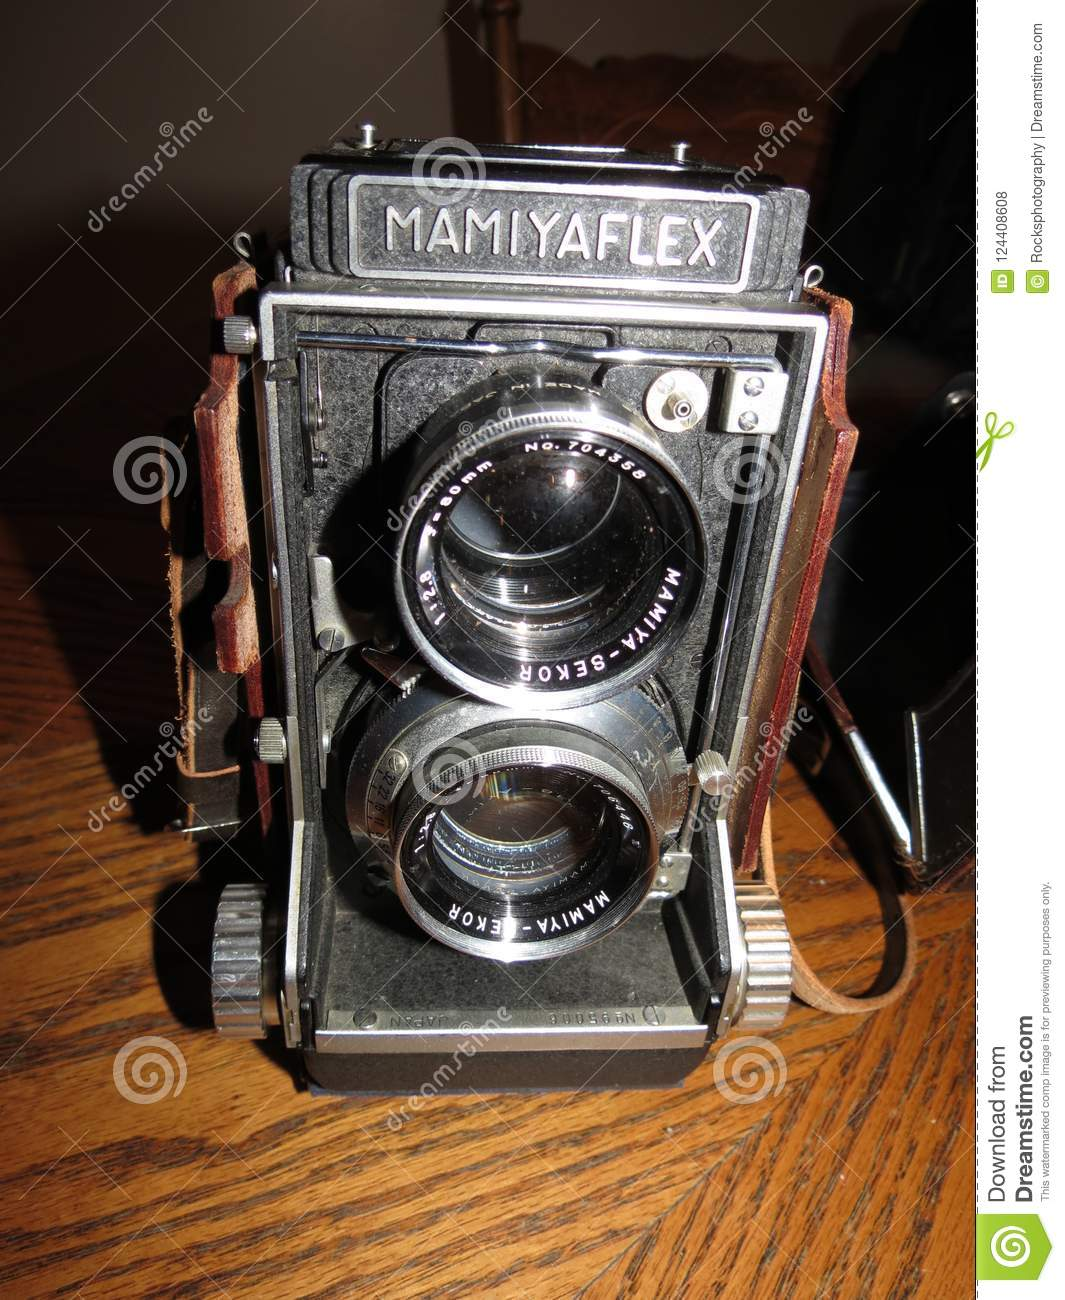 VINTAGE MAMIYA FLEX MEDIUM FORMAT CAMERA Editorial Stock Photo